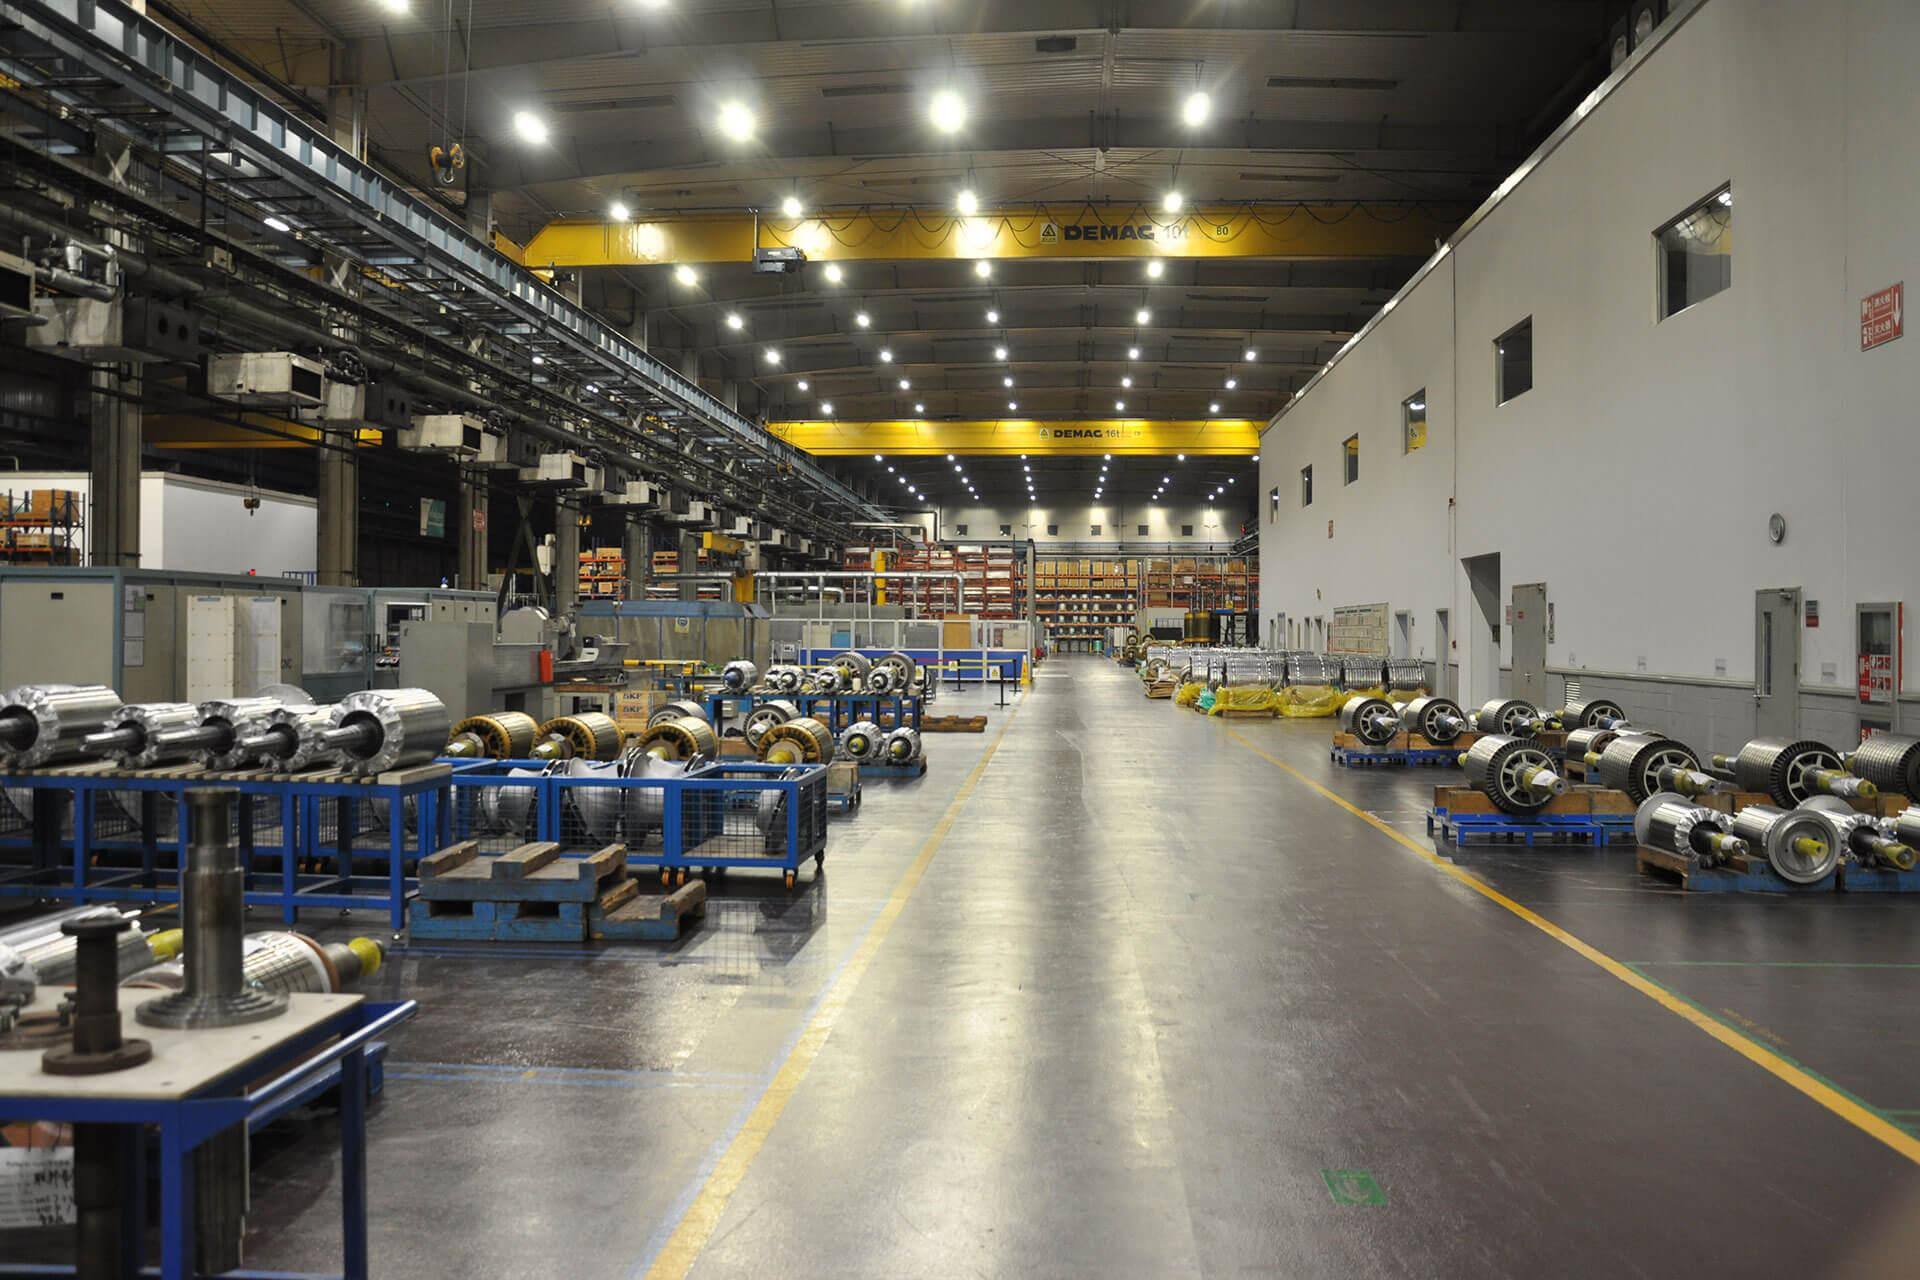 Schréder provided an energy-efficient lighting solution that improved visibility for this busy production facility